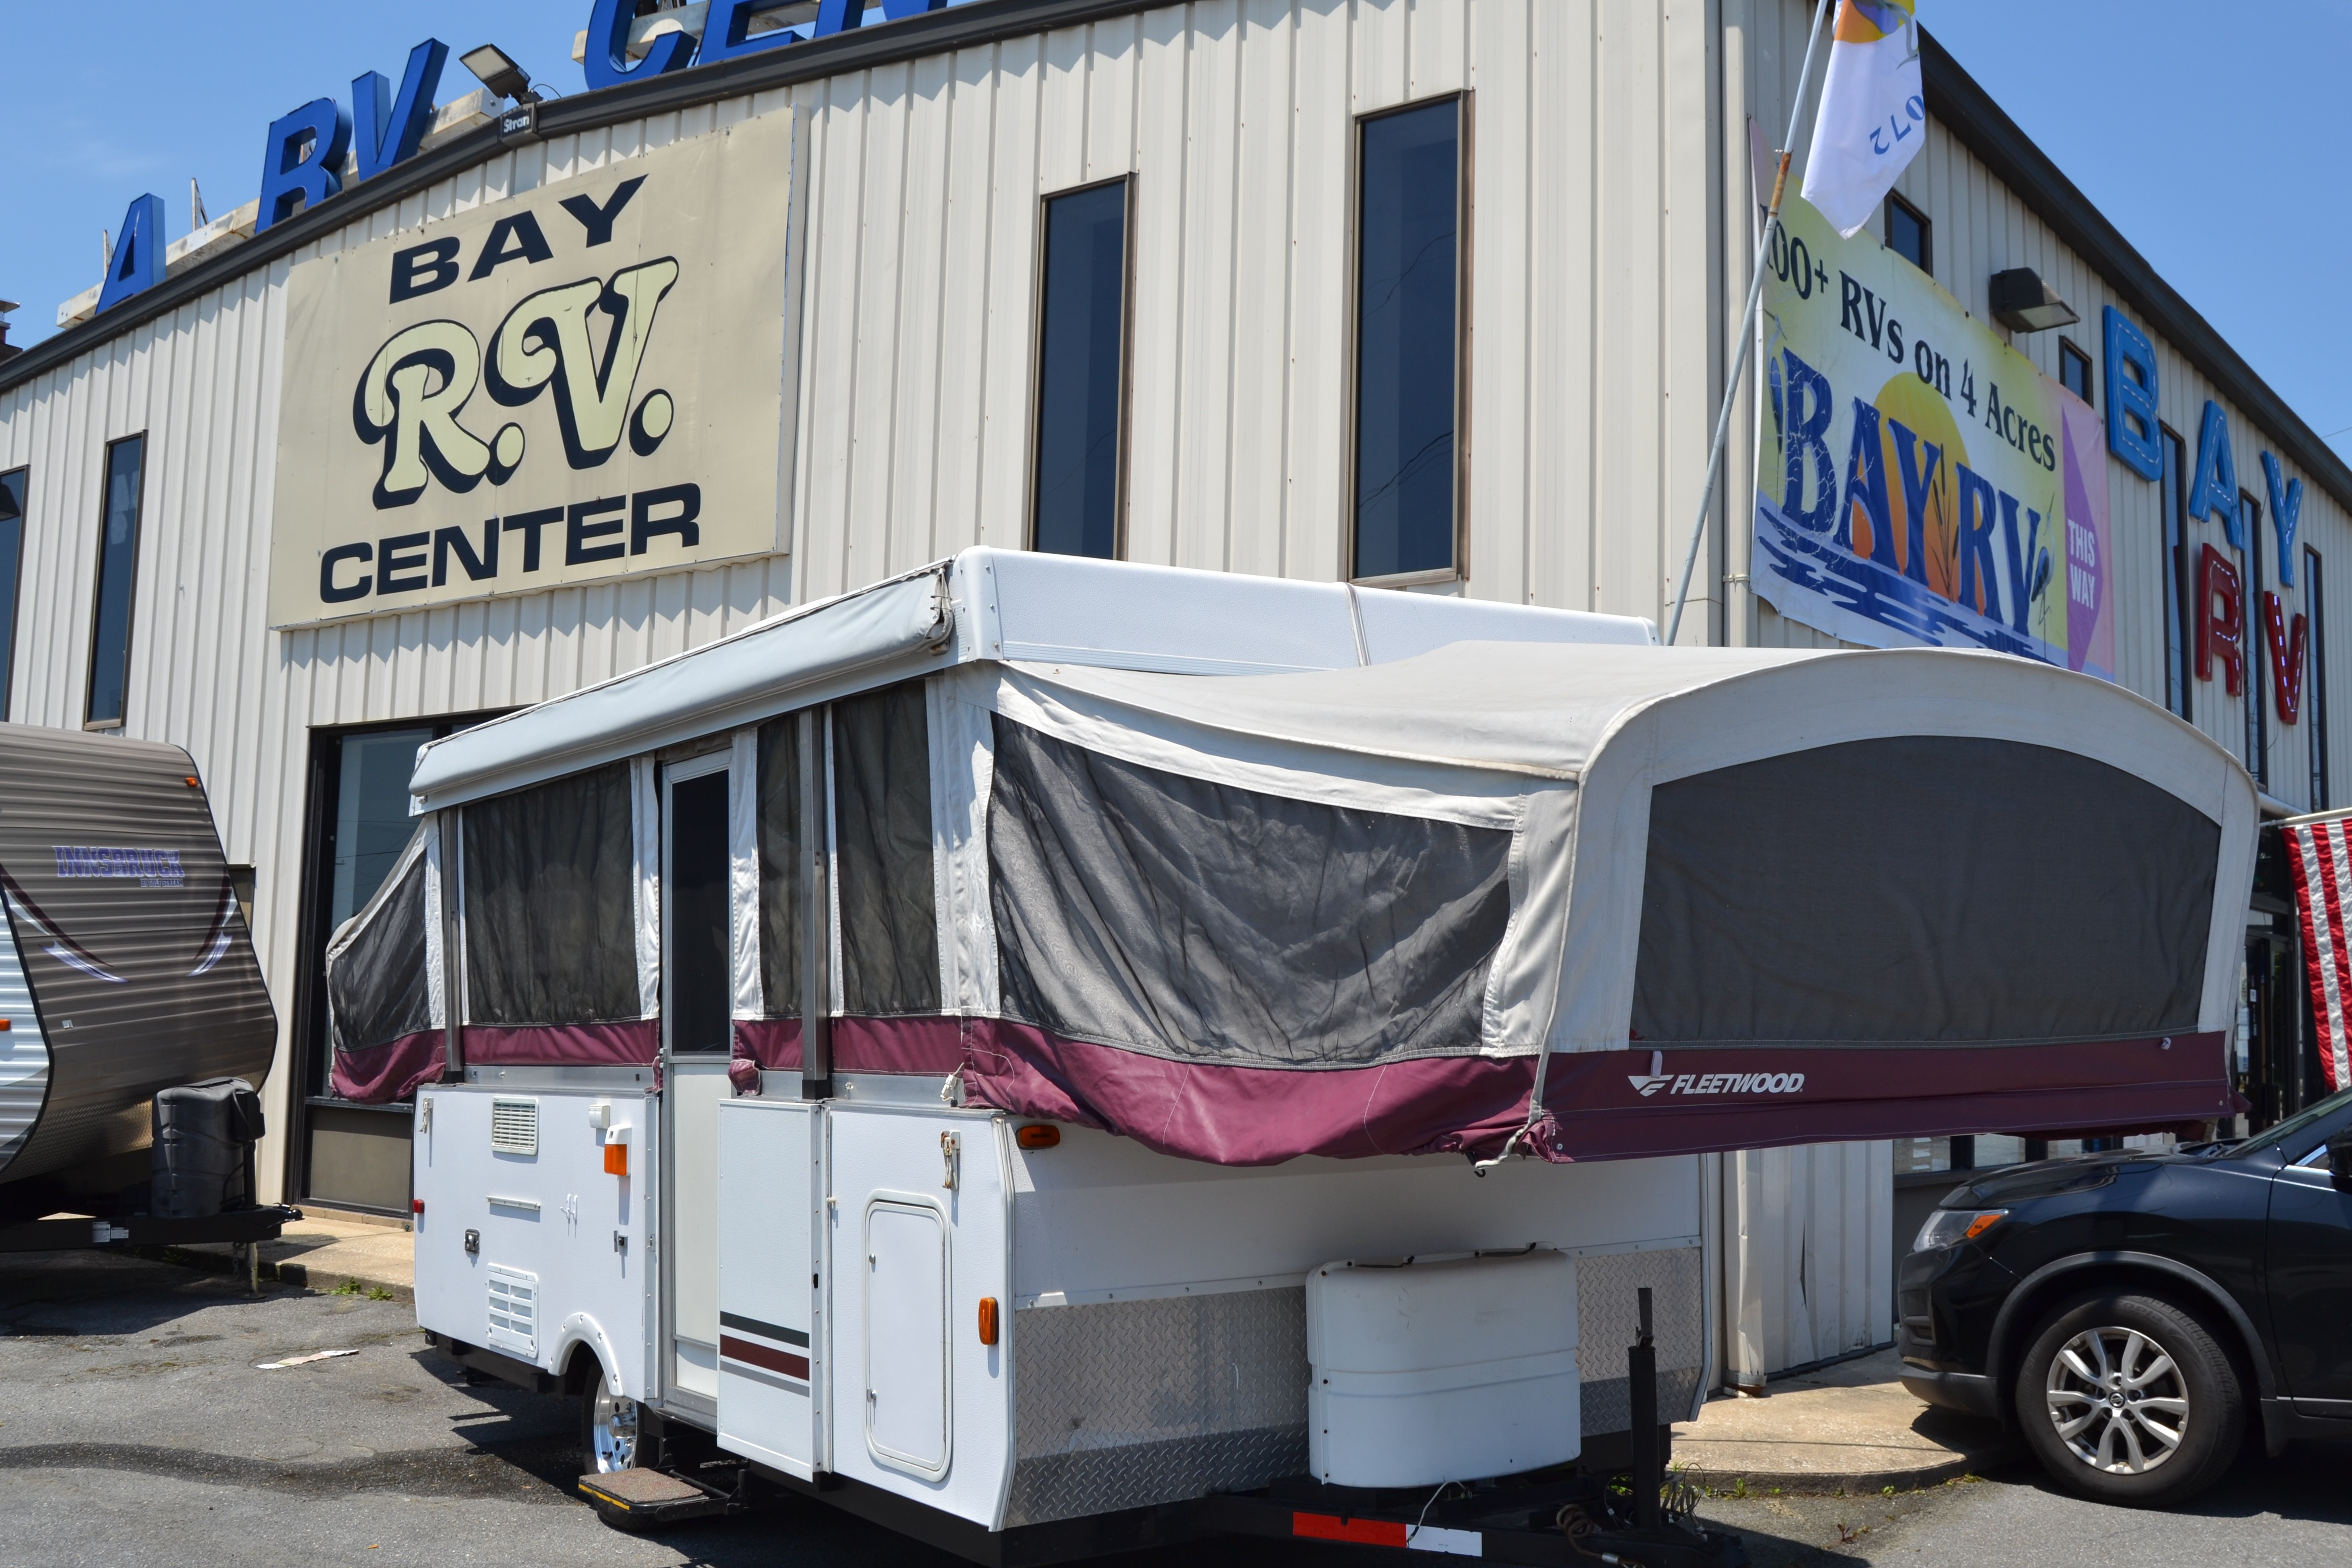 Used, 2006, Coleman Camping Trailers, FLEETWOOD COLEMAN NIAGARA, Pop-Up Campers